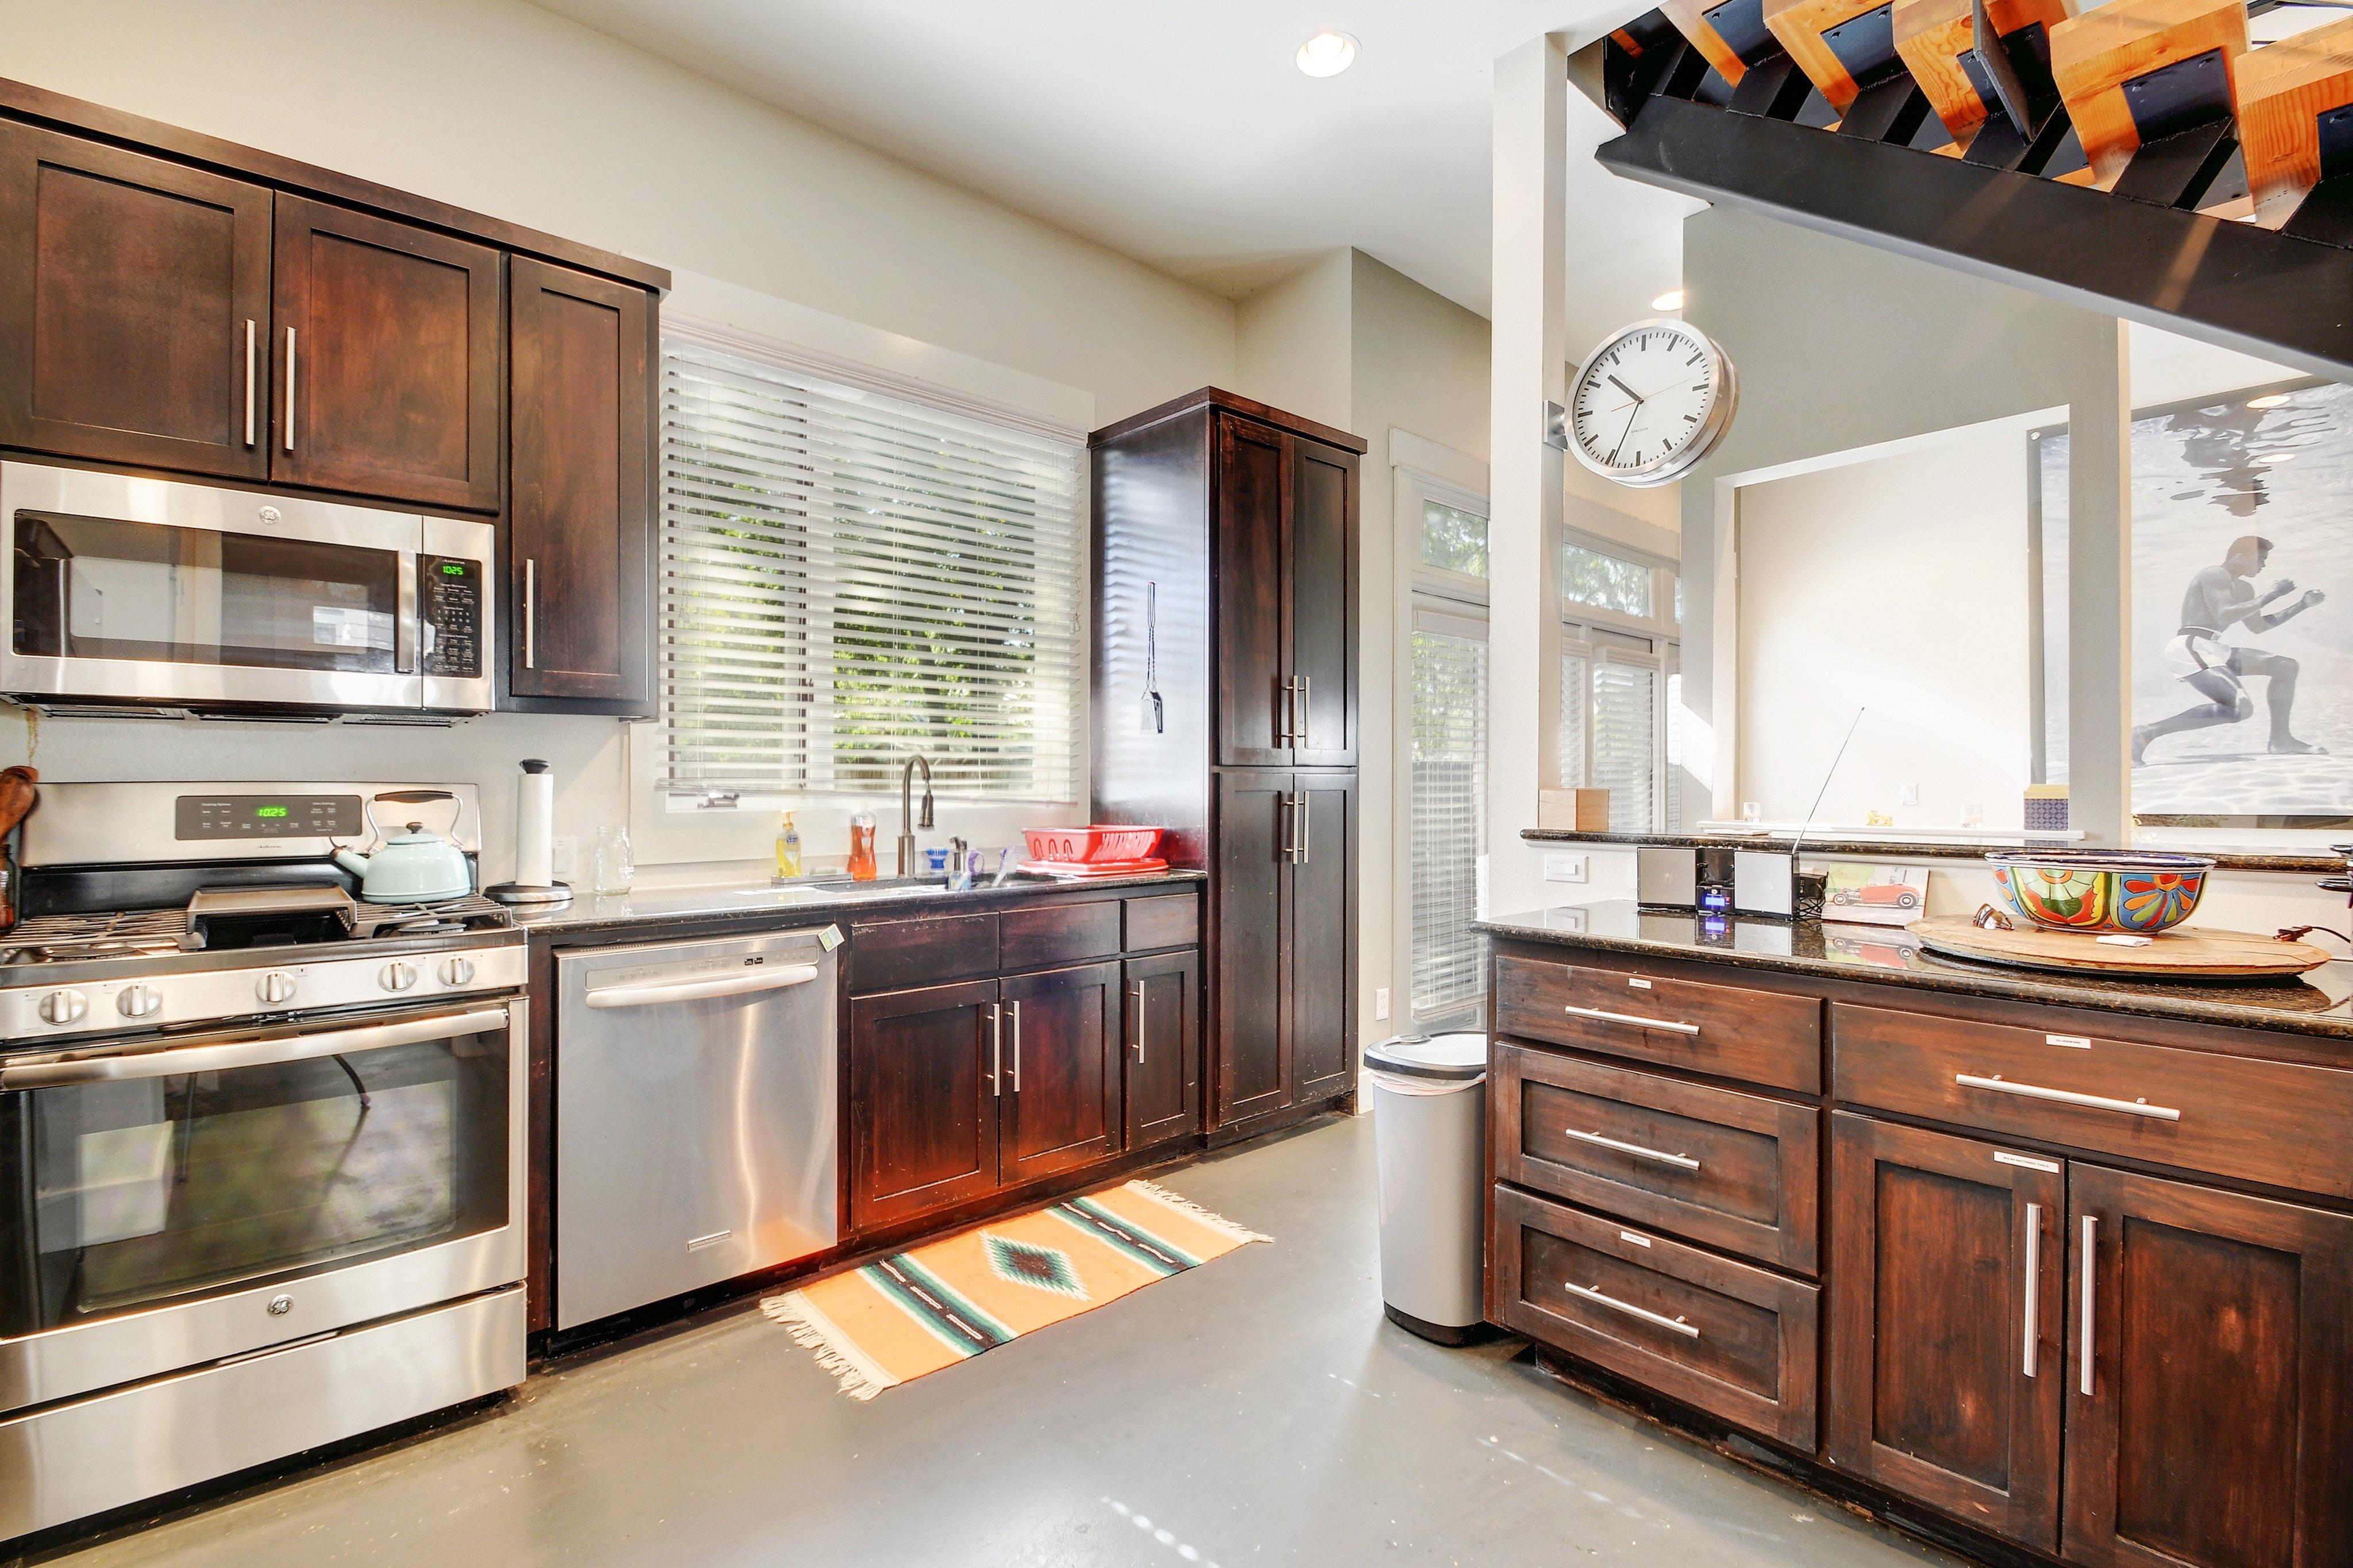 Granite countertops and all stainless steel appliances, including dishwasher, range, and fridge.